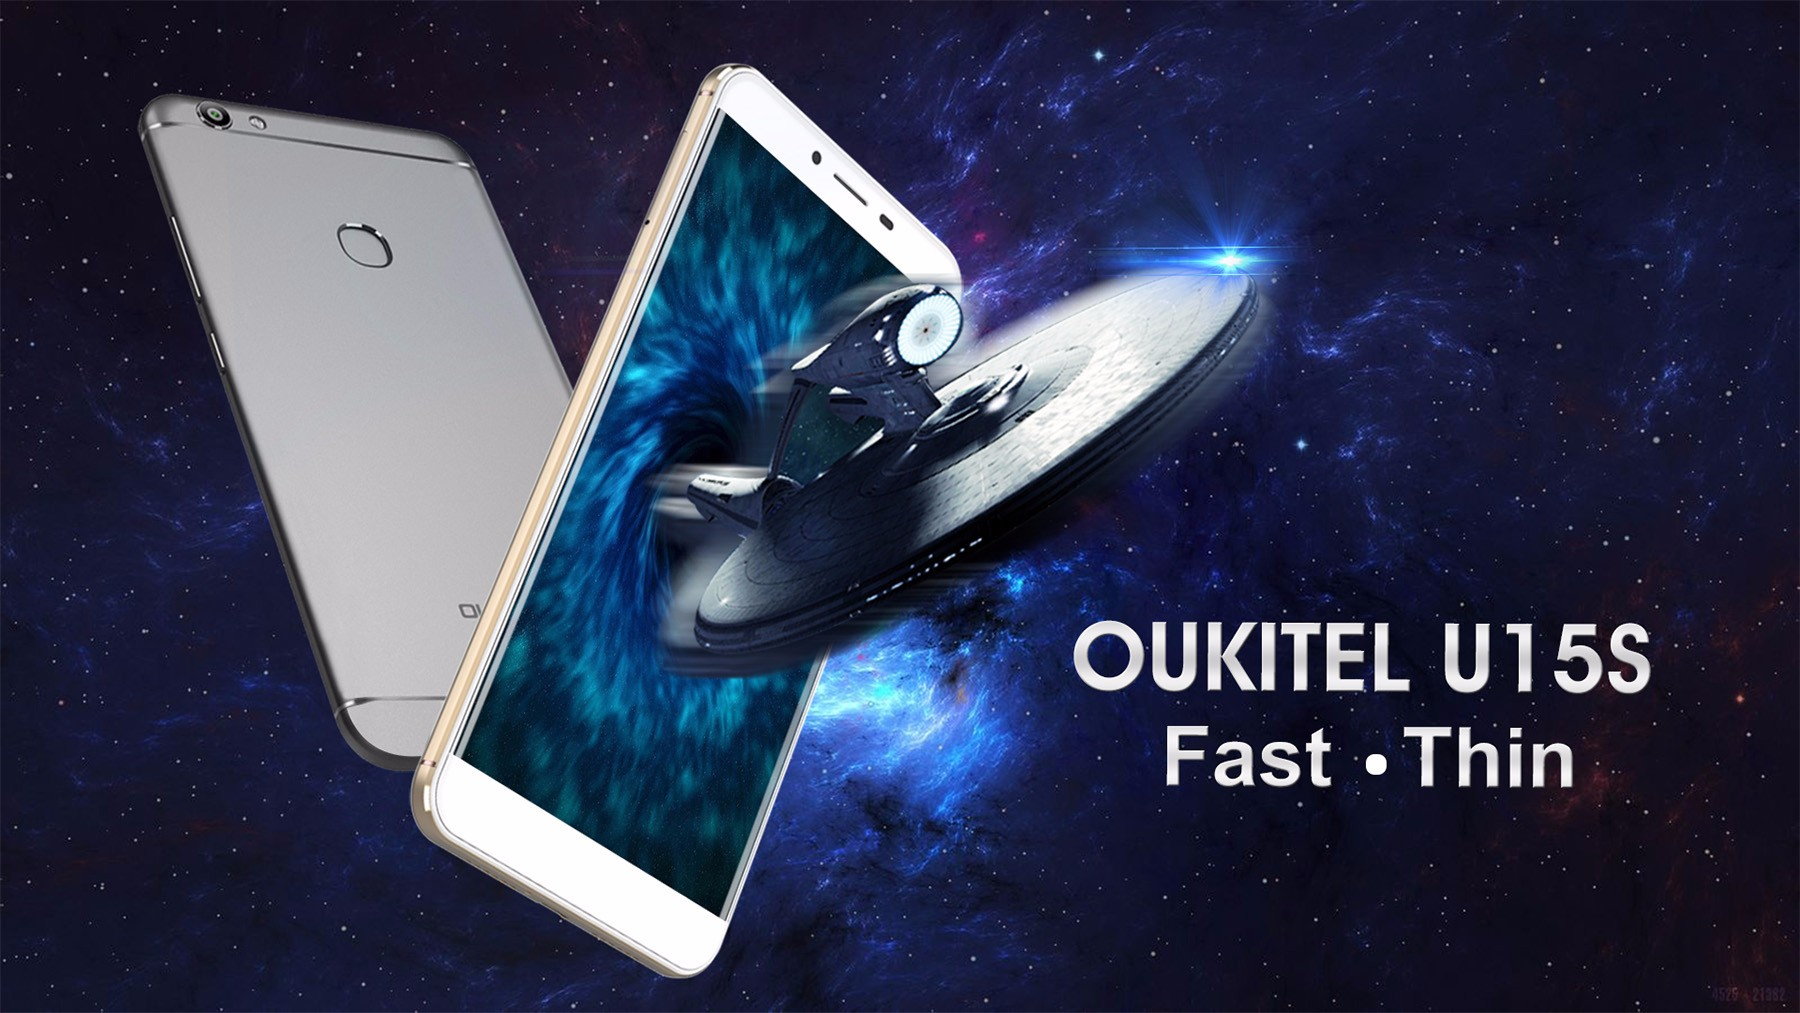 Oukitel U15S Android 6.0 5.5 inch 4G Phablet MTK6750T Octa Core 1.5GHz 4GB RAM 32GB ROM Fingerprint Scanner